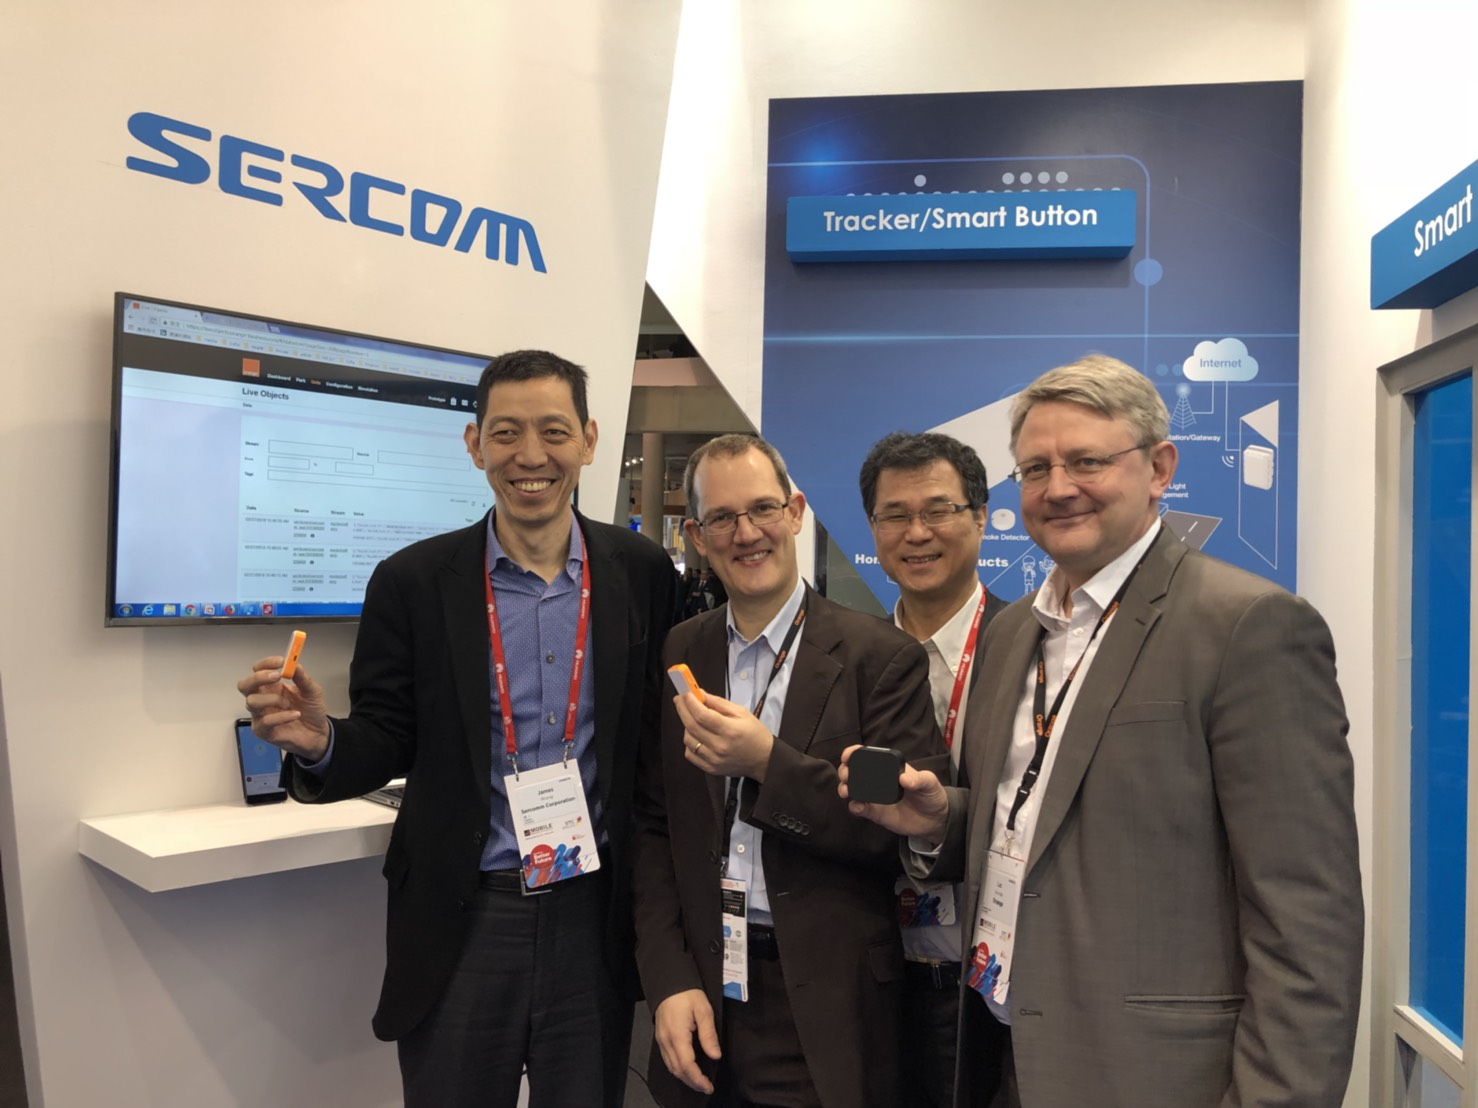 Sercomm's new series of LTE-M IoT devices heralds another era of mobile IoT technology